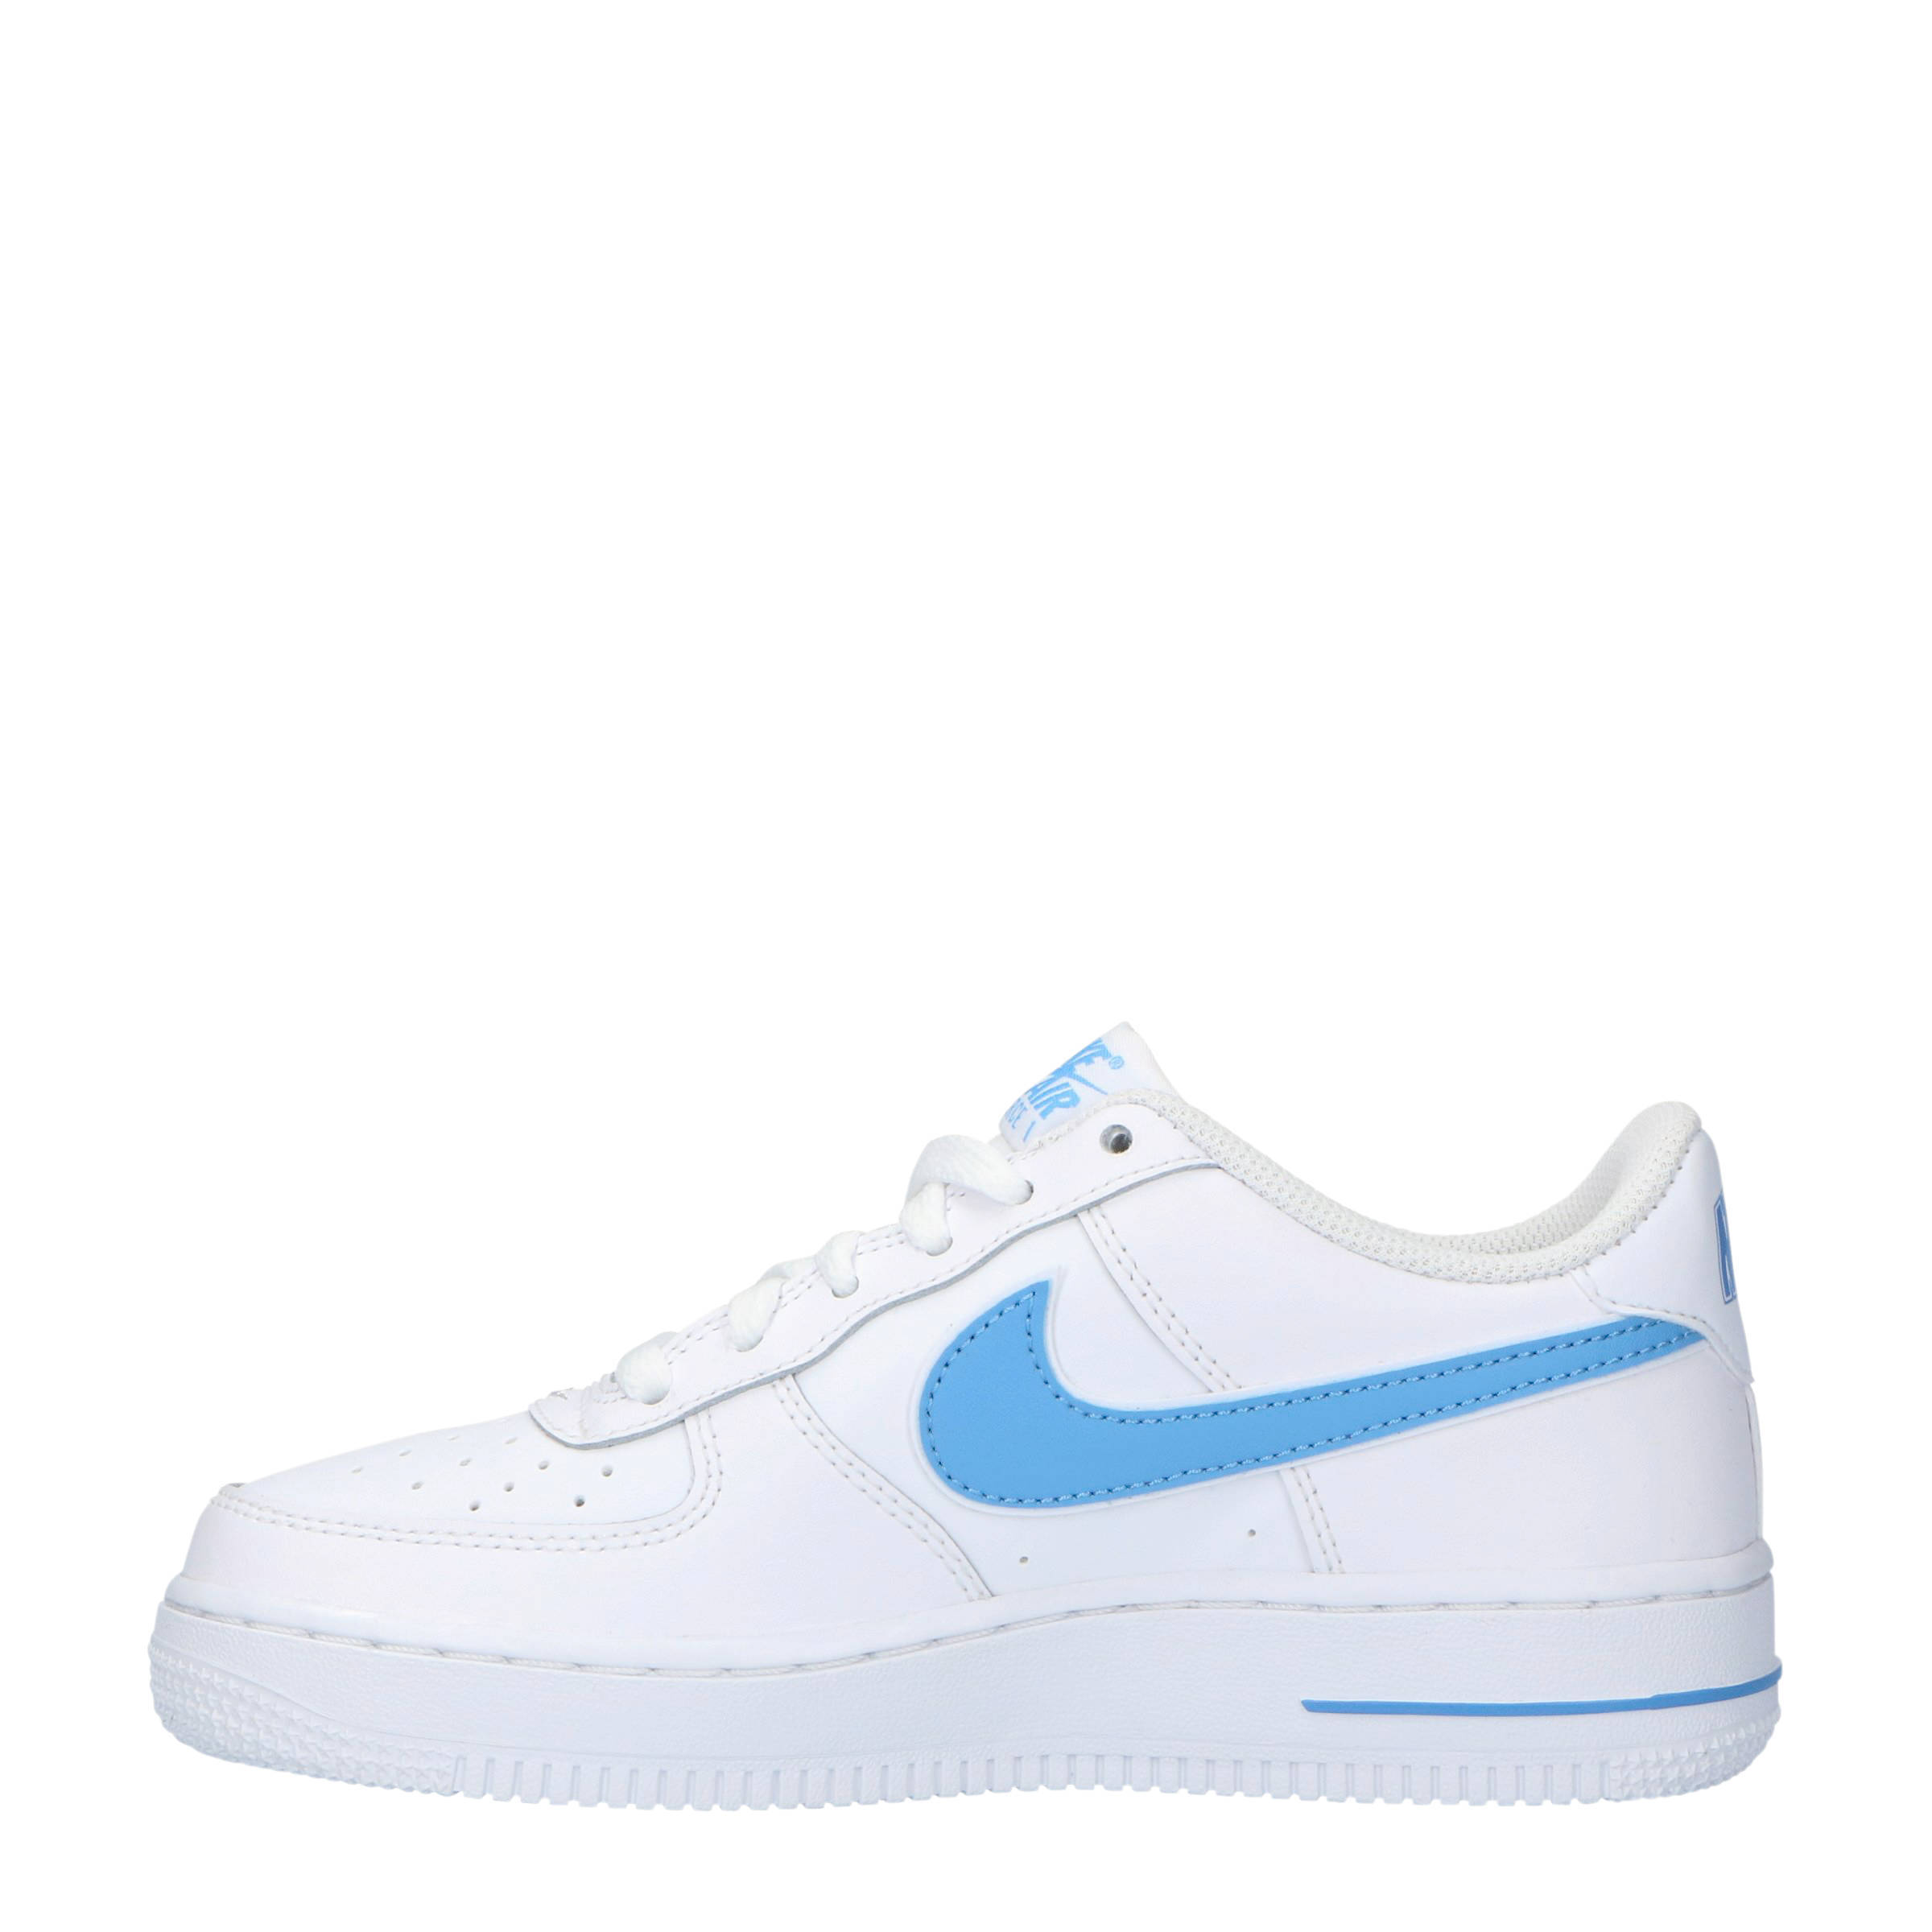 Air Force 1-3 (GS) sneakers leer wit/lichtblauw